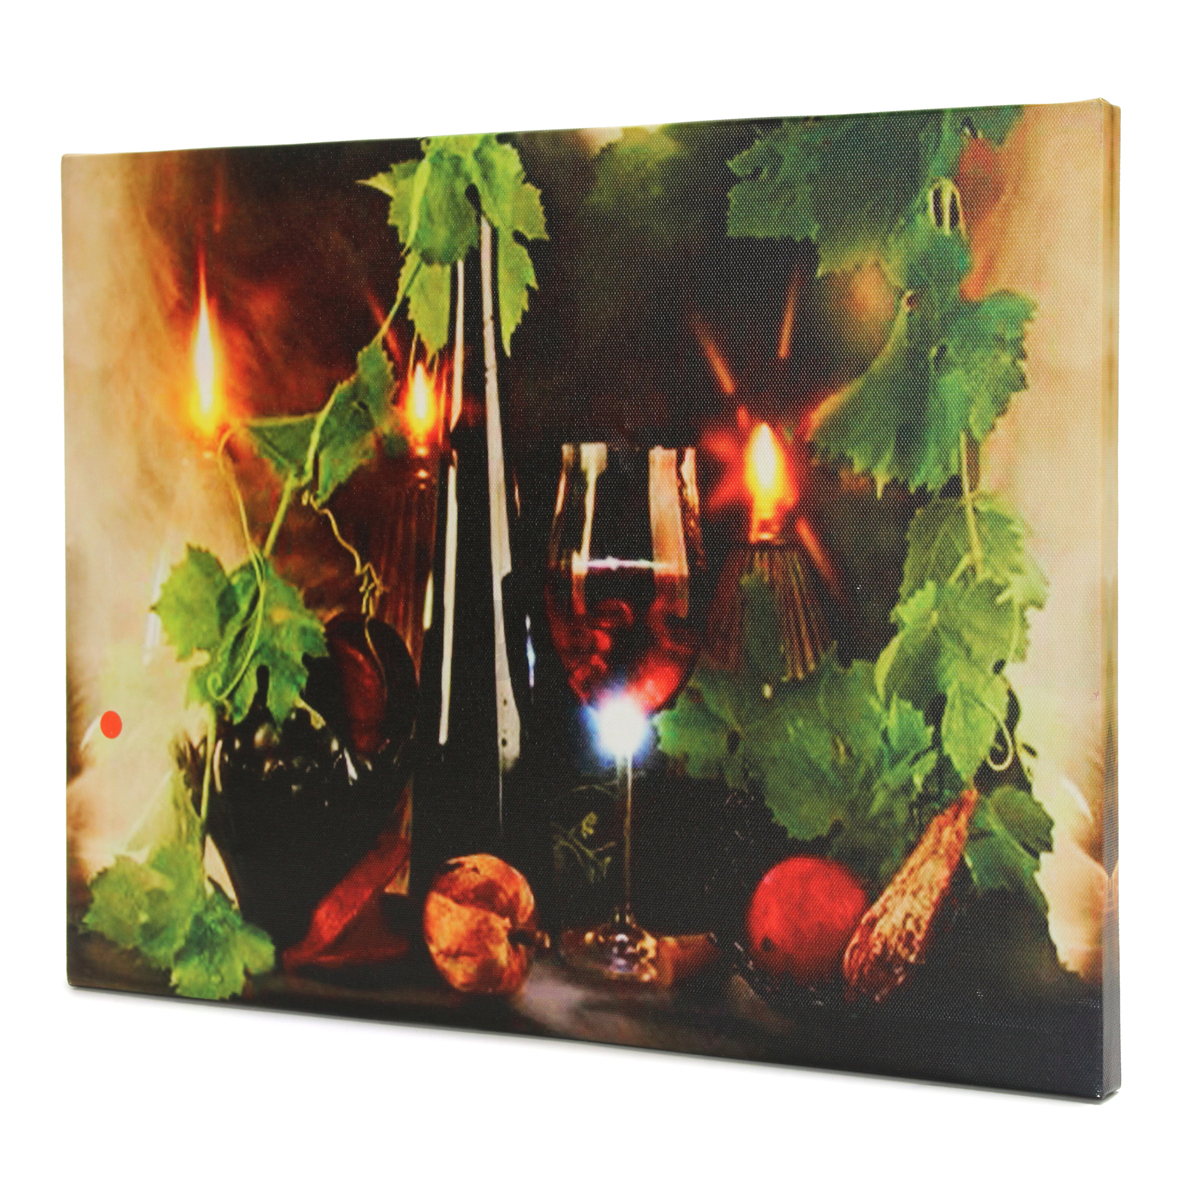 led light up wine flickering art painting canvas picture. Black Bedroom Furniture Sets. Home Design Ideas